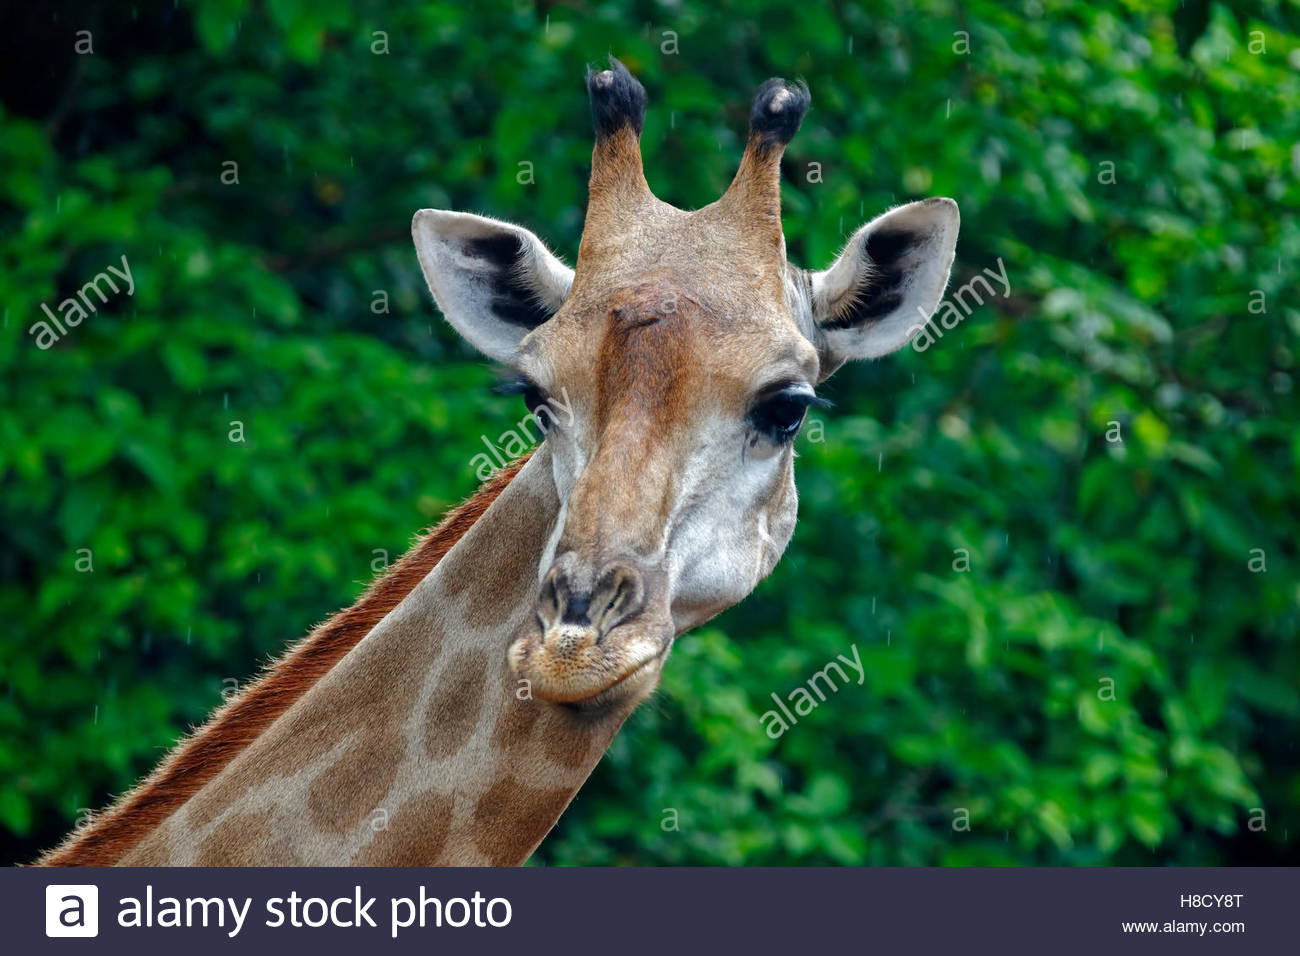 Giraffe head Close up - Stock Image